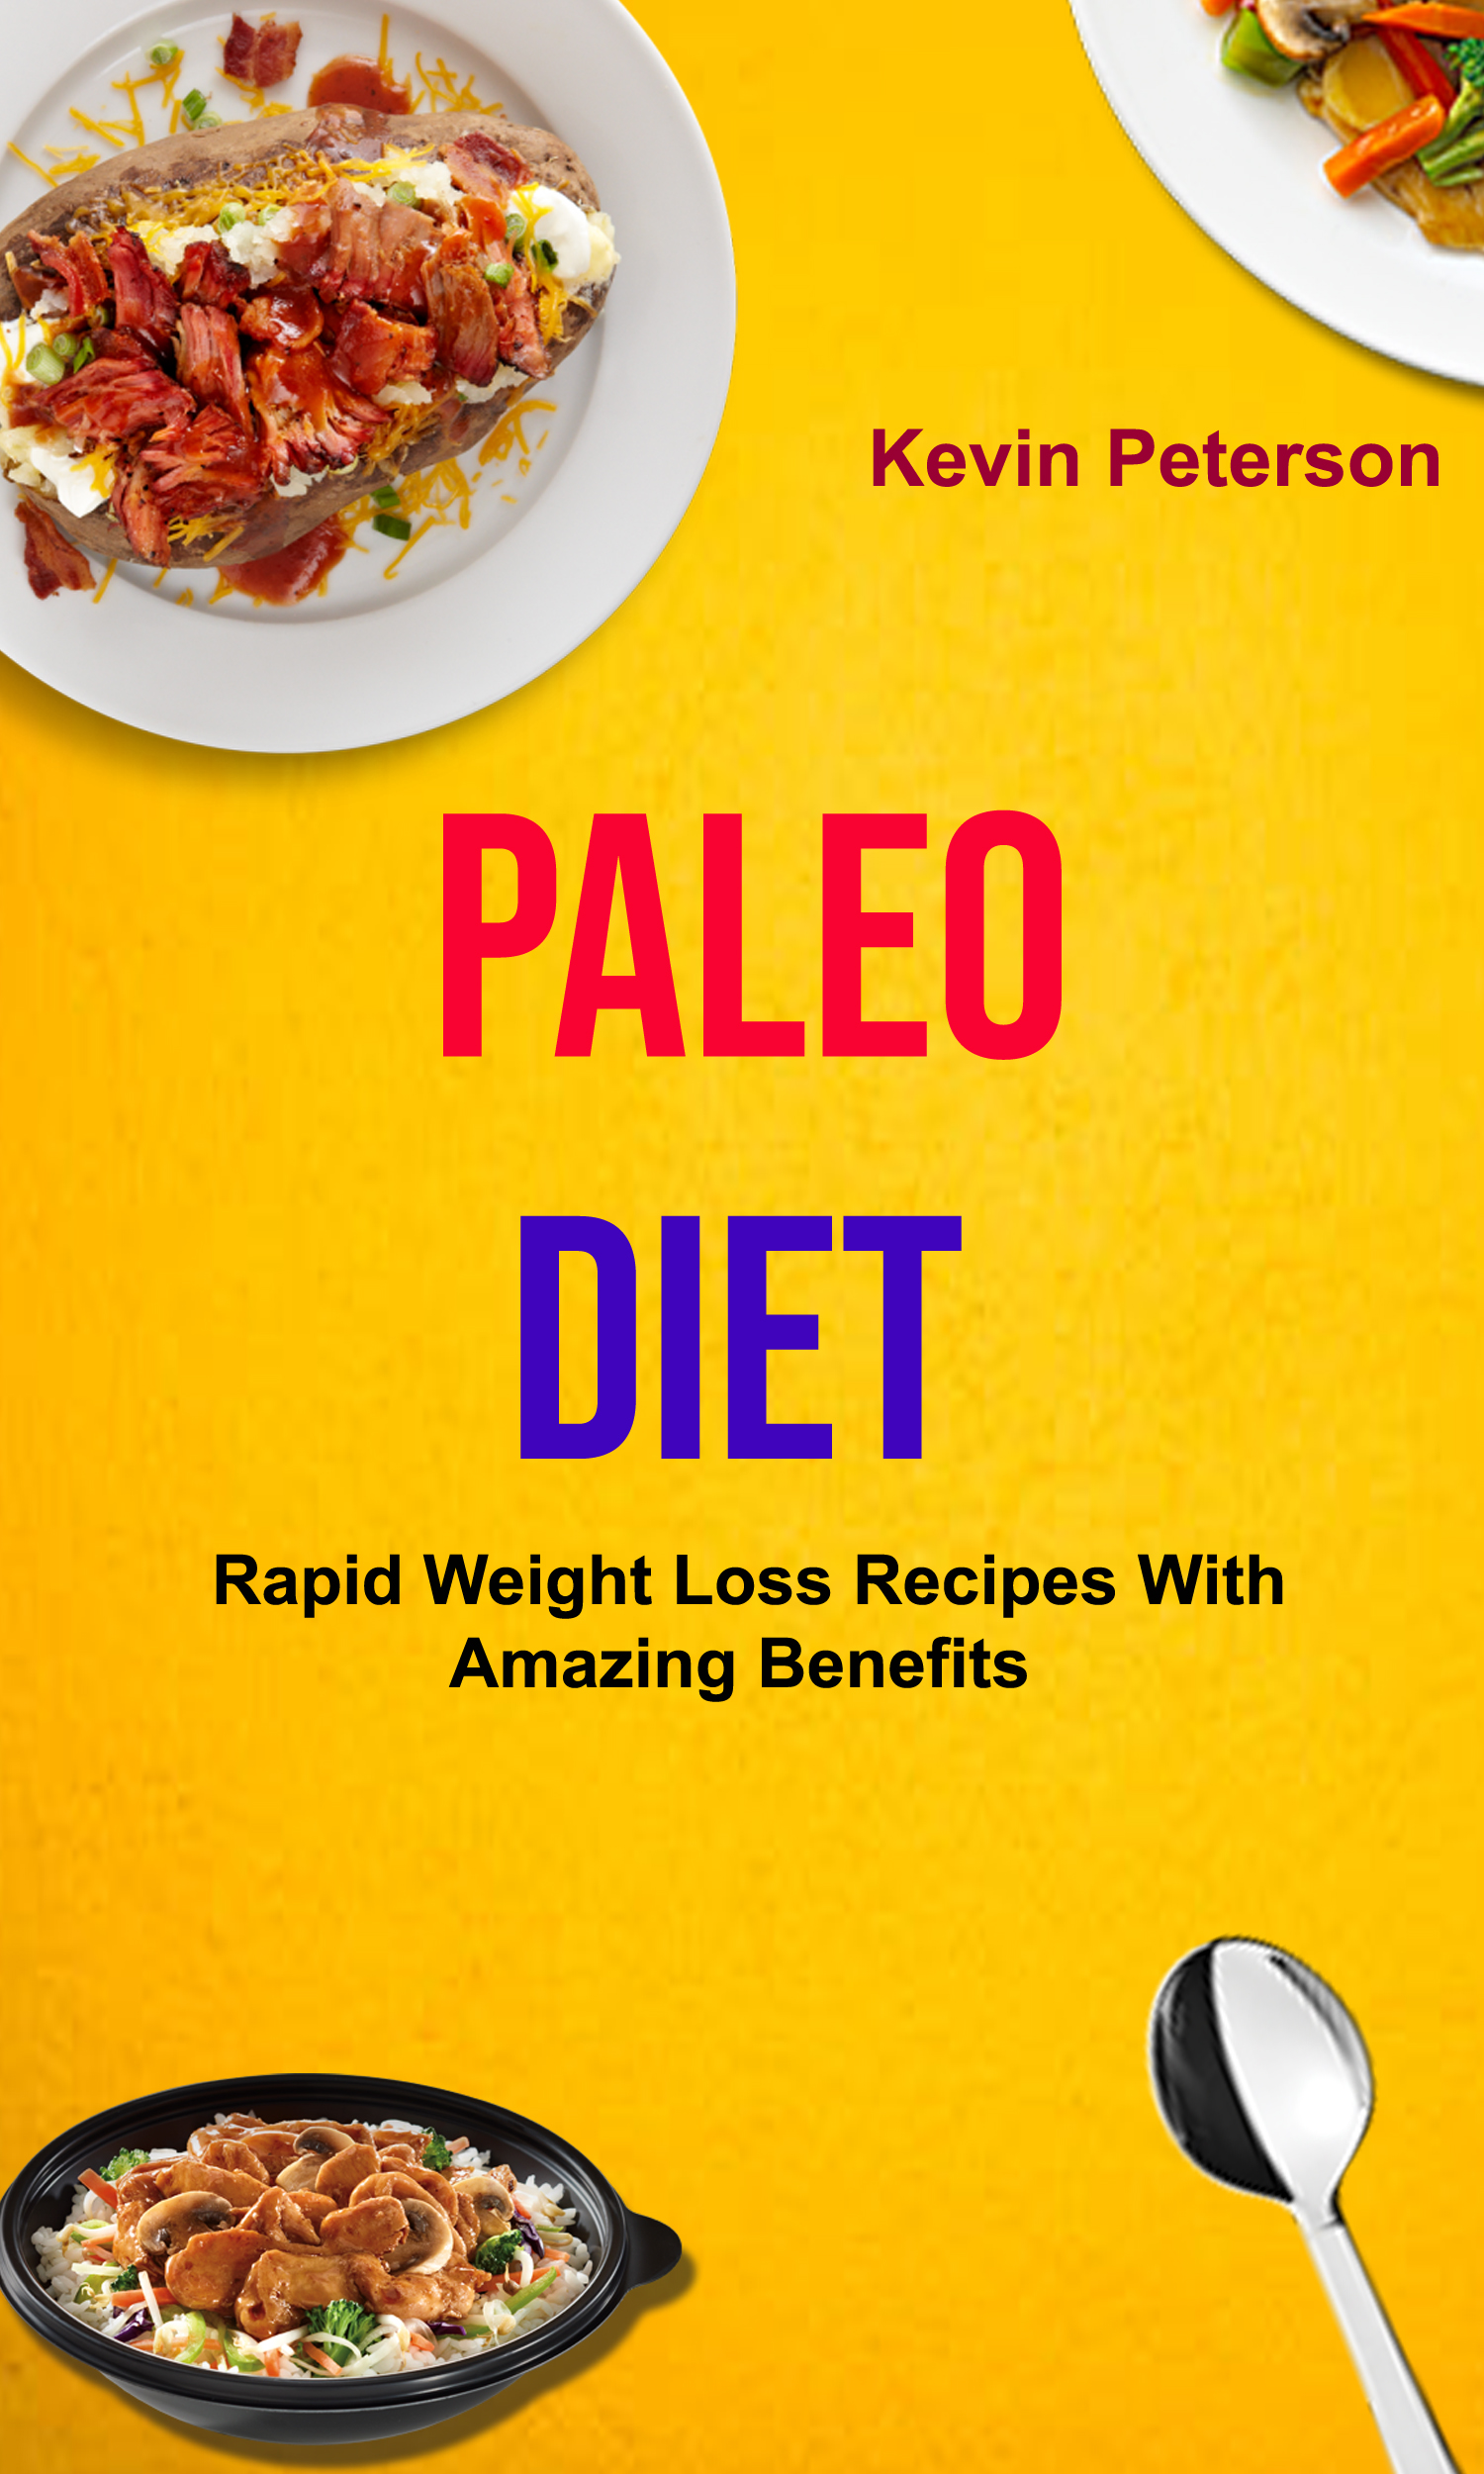 Paleo diet: rapid weight loss recipes with amazing benefits